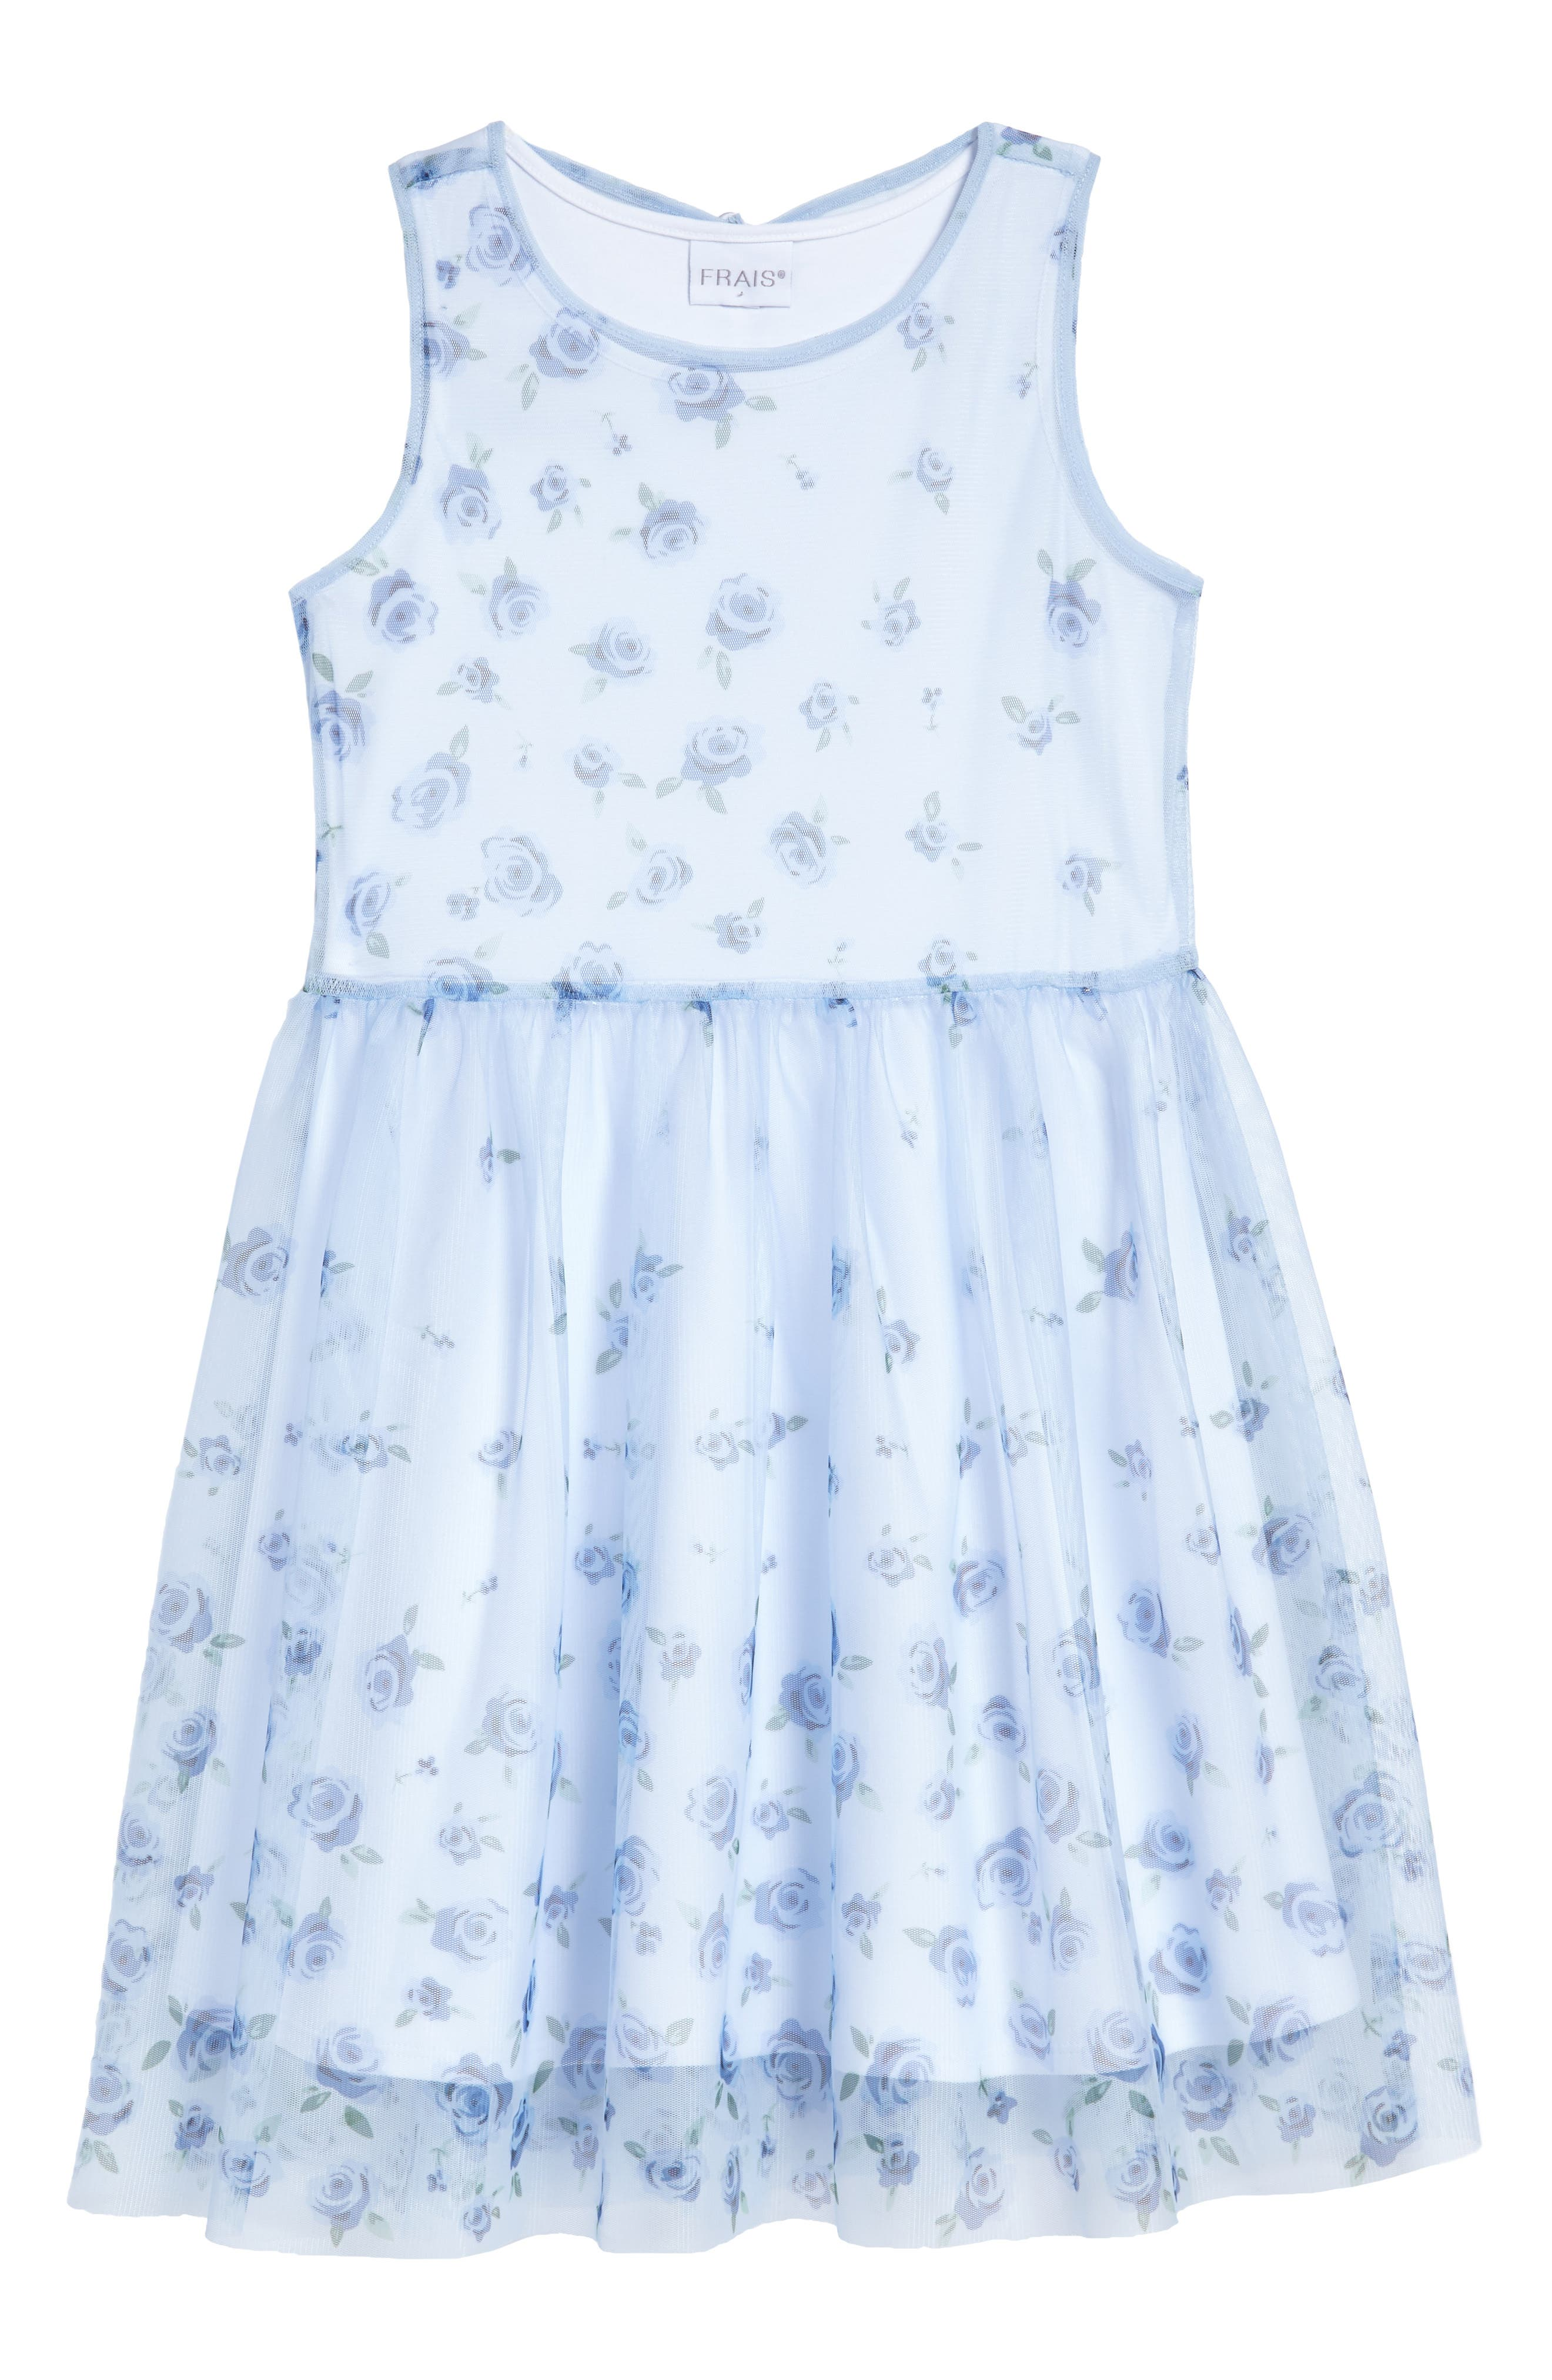 Frais Floral Print Mesh Dress (Toddler Girls, Little Girls & Big Girls)